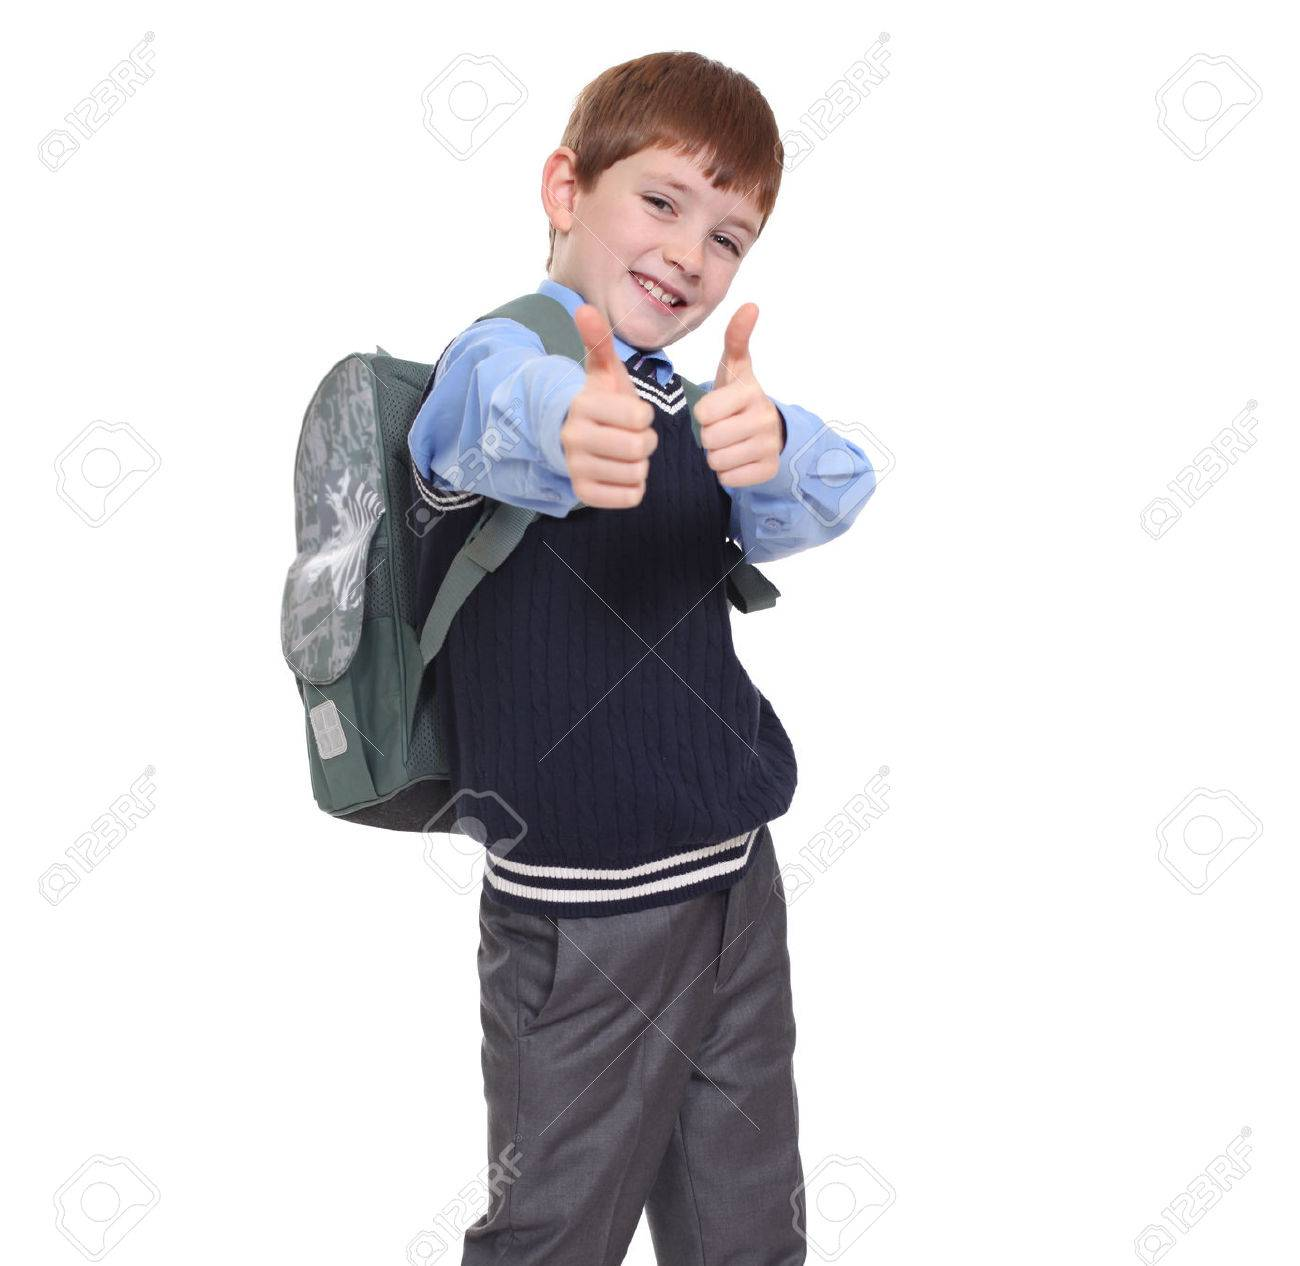 portrait of a schoolboy isolated on white background Stock Photo - 46479303